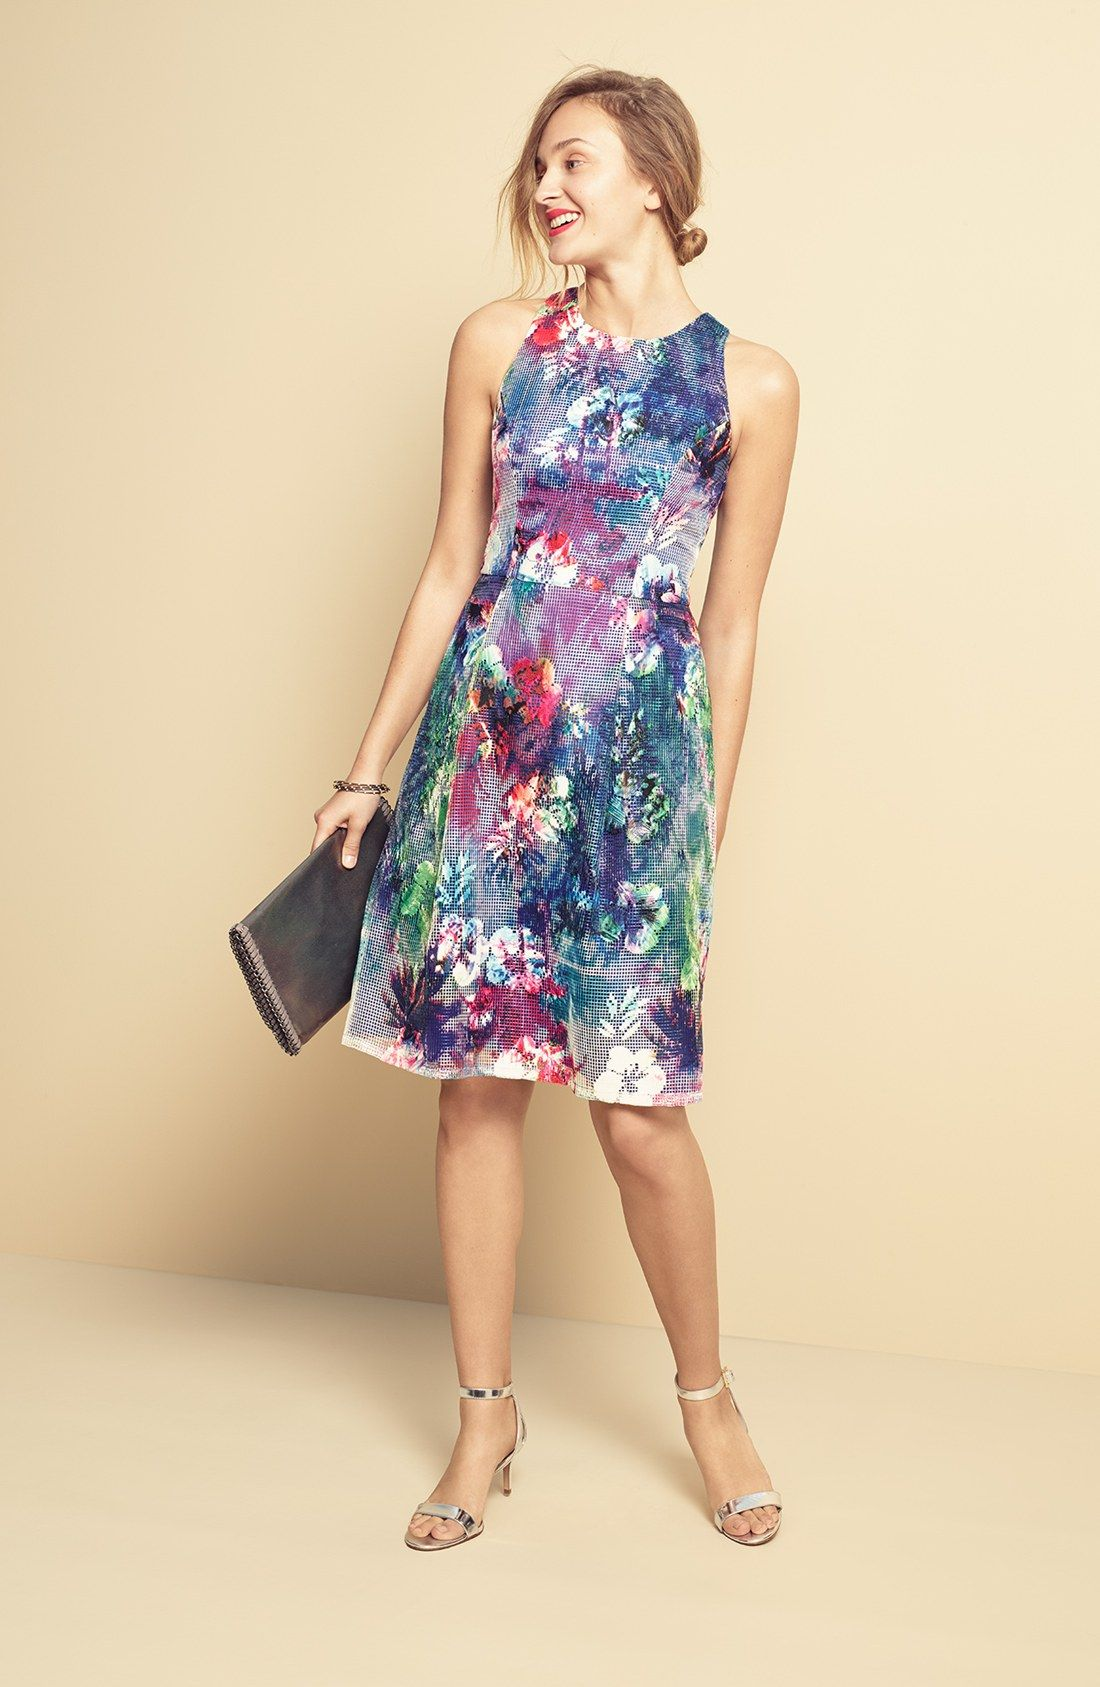 Aidan By By Atnordstrom Dressaidanbyamaidanbyam Aidan Mattox Atnordstrom Aidan Mattox Dressaidanbyamaidanbyam nwmv80NO